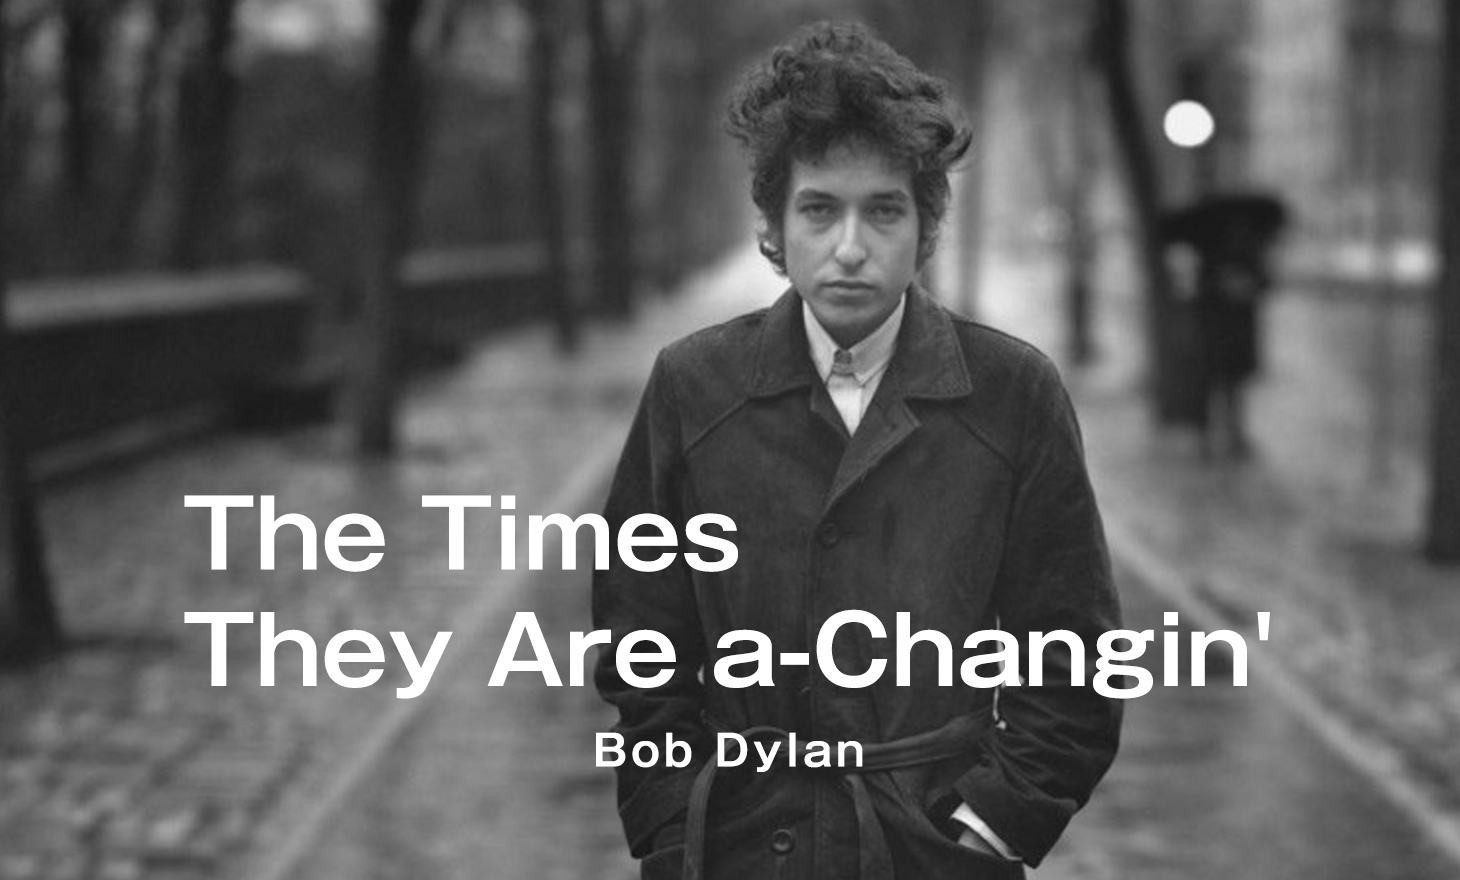 Bob Dylan : The Times They Are a-Changin'